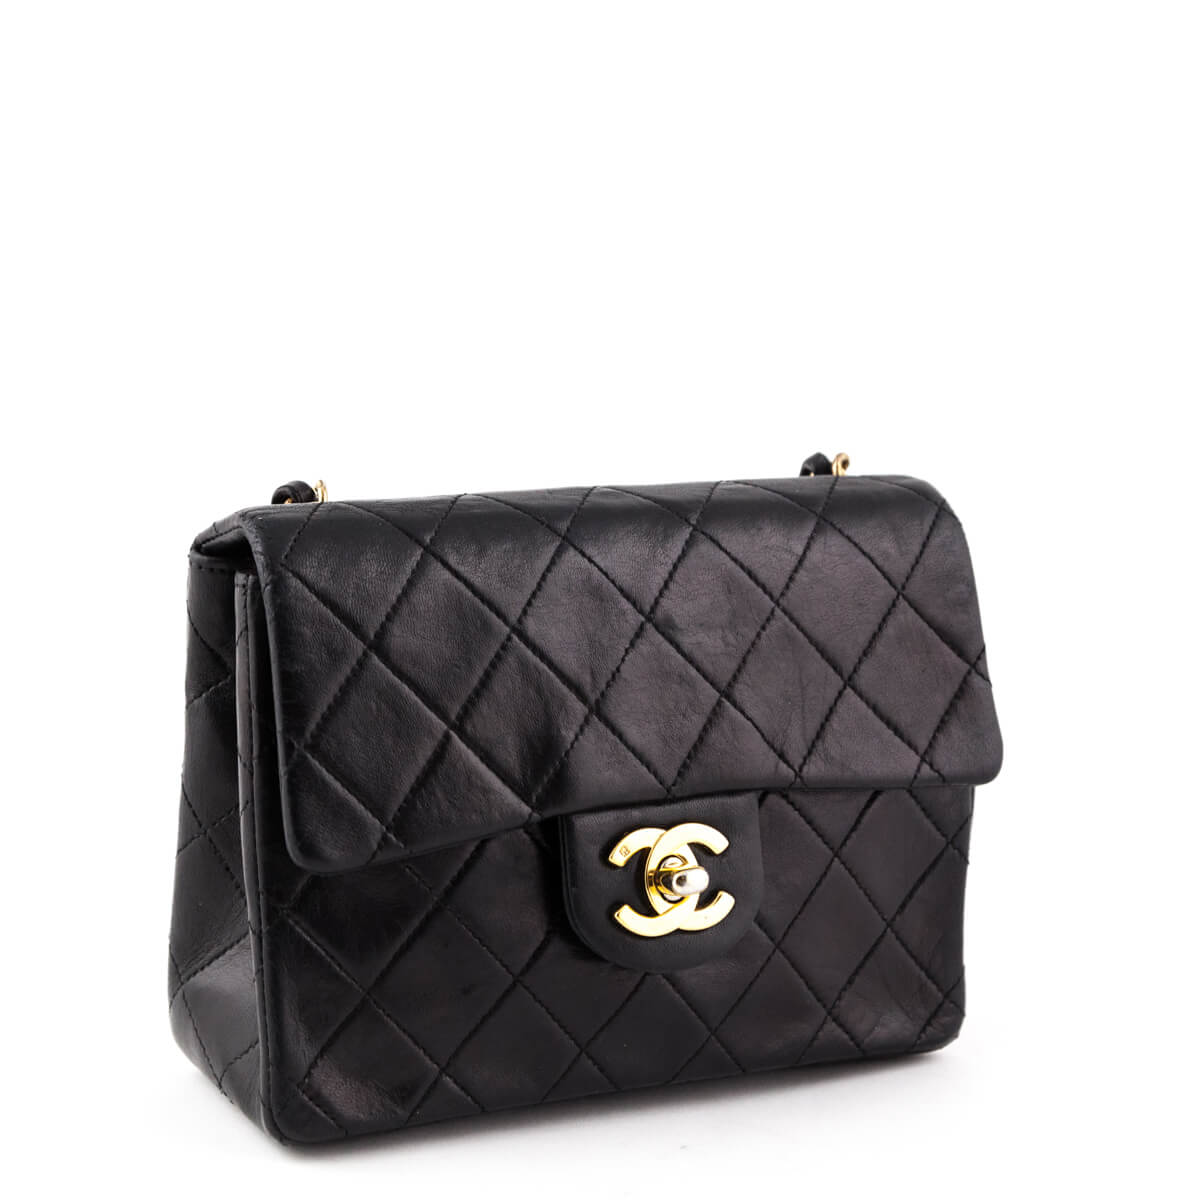 8472ecb7d5f1 ... Chanel Black Lambskin Vintage Mini Square Flap bag - LOVE that BAG -  Preowned Authentic Designer ...